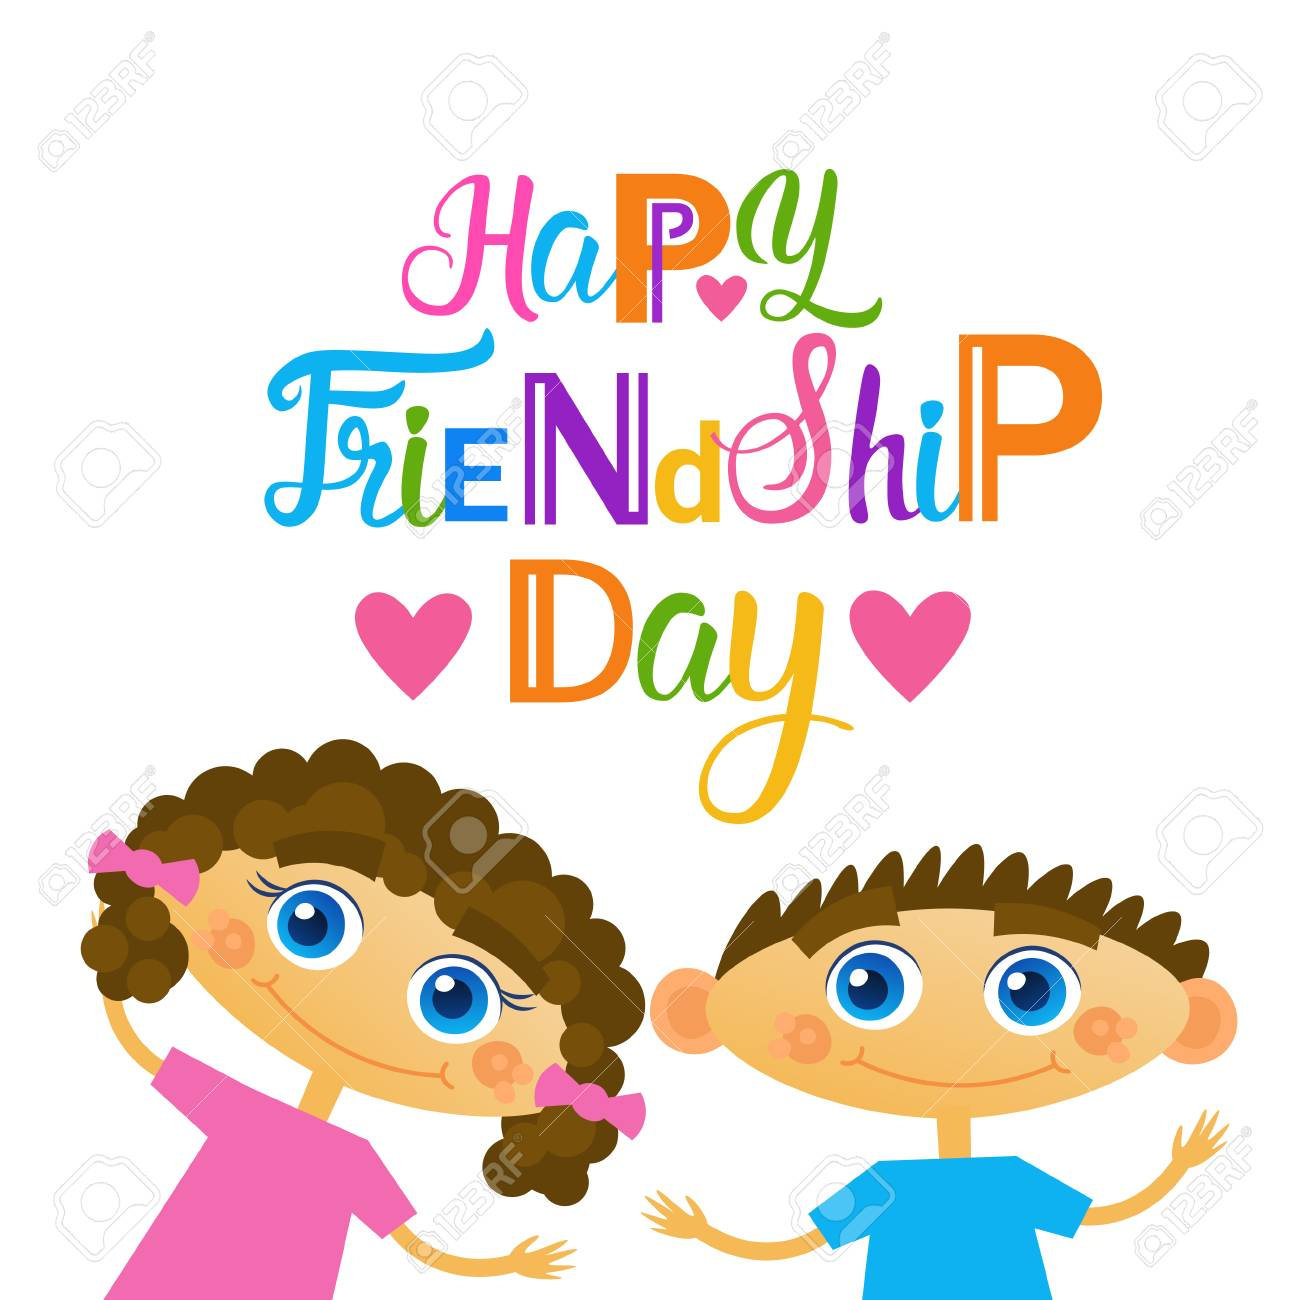 Happy friendship day greeting card friends holiday banner flat happy friendship day greeting card friends holiday banner flat vector illustration stock vector 81923262 m4hsunfo